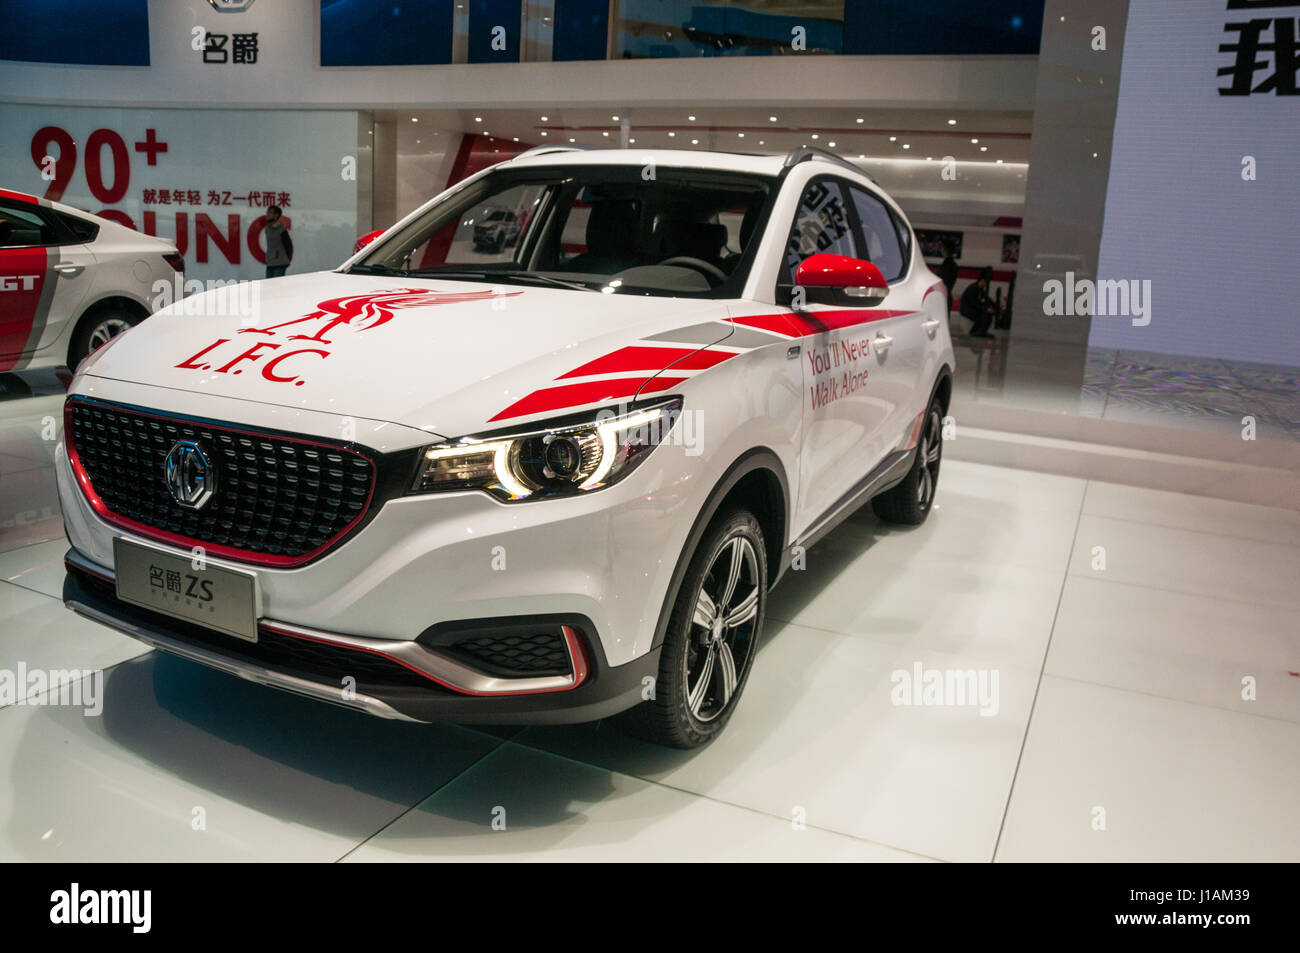 Shanghai, China. 19th Apr, 2017. Production version of the MG ZS small SUV at the 2017 Shanghai Auto Show. Liverpool - Stock Image